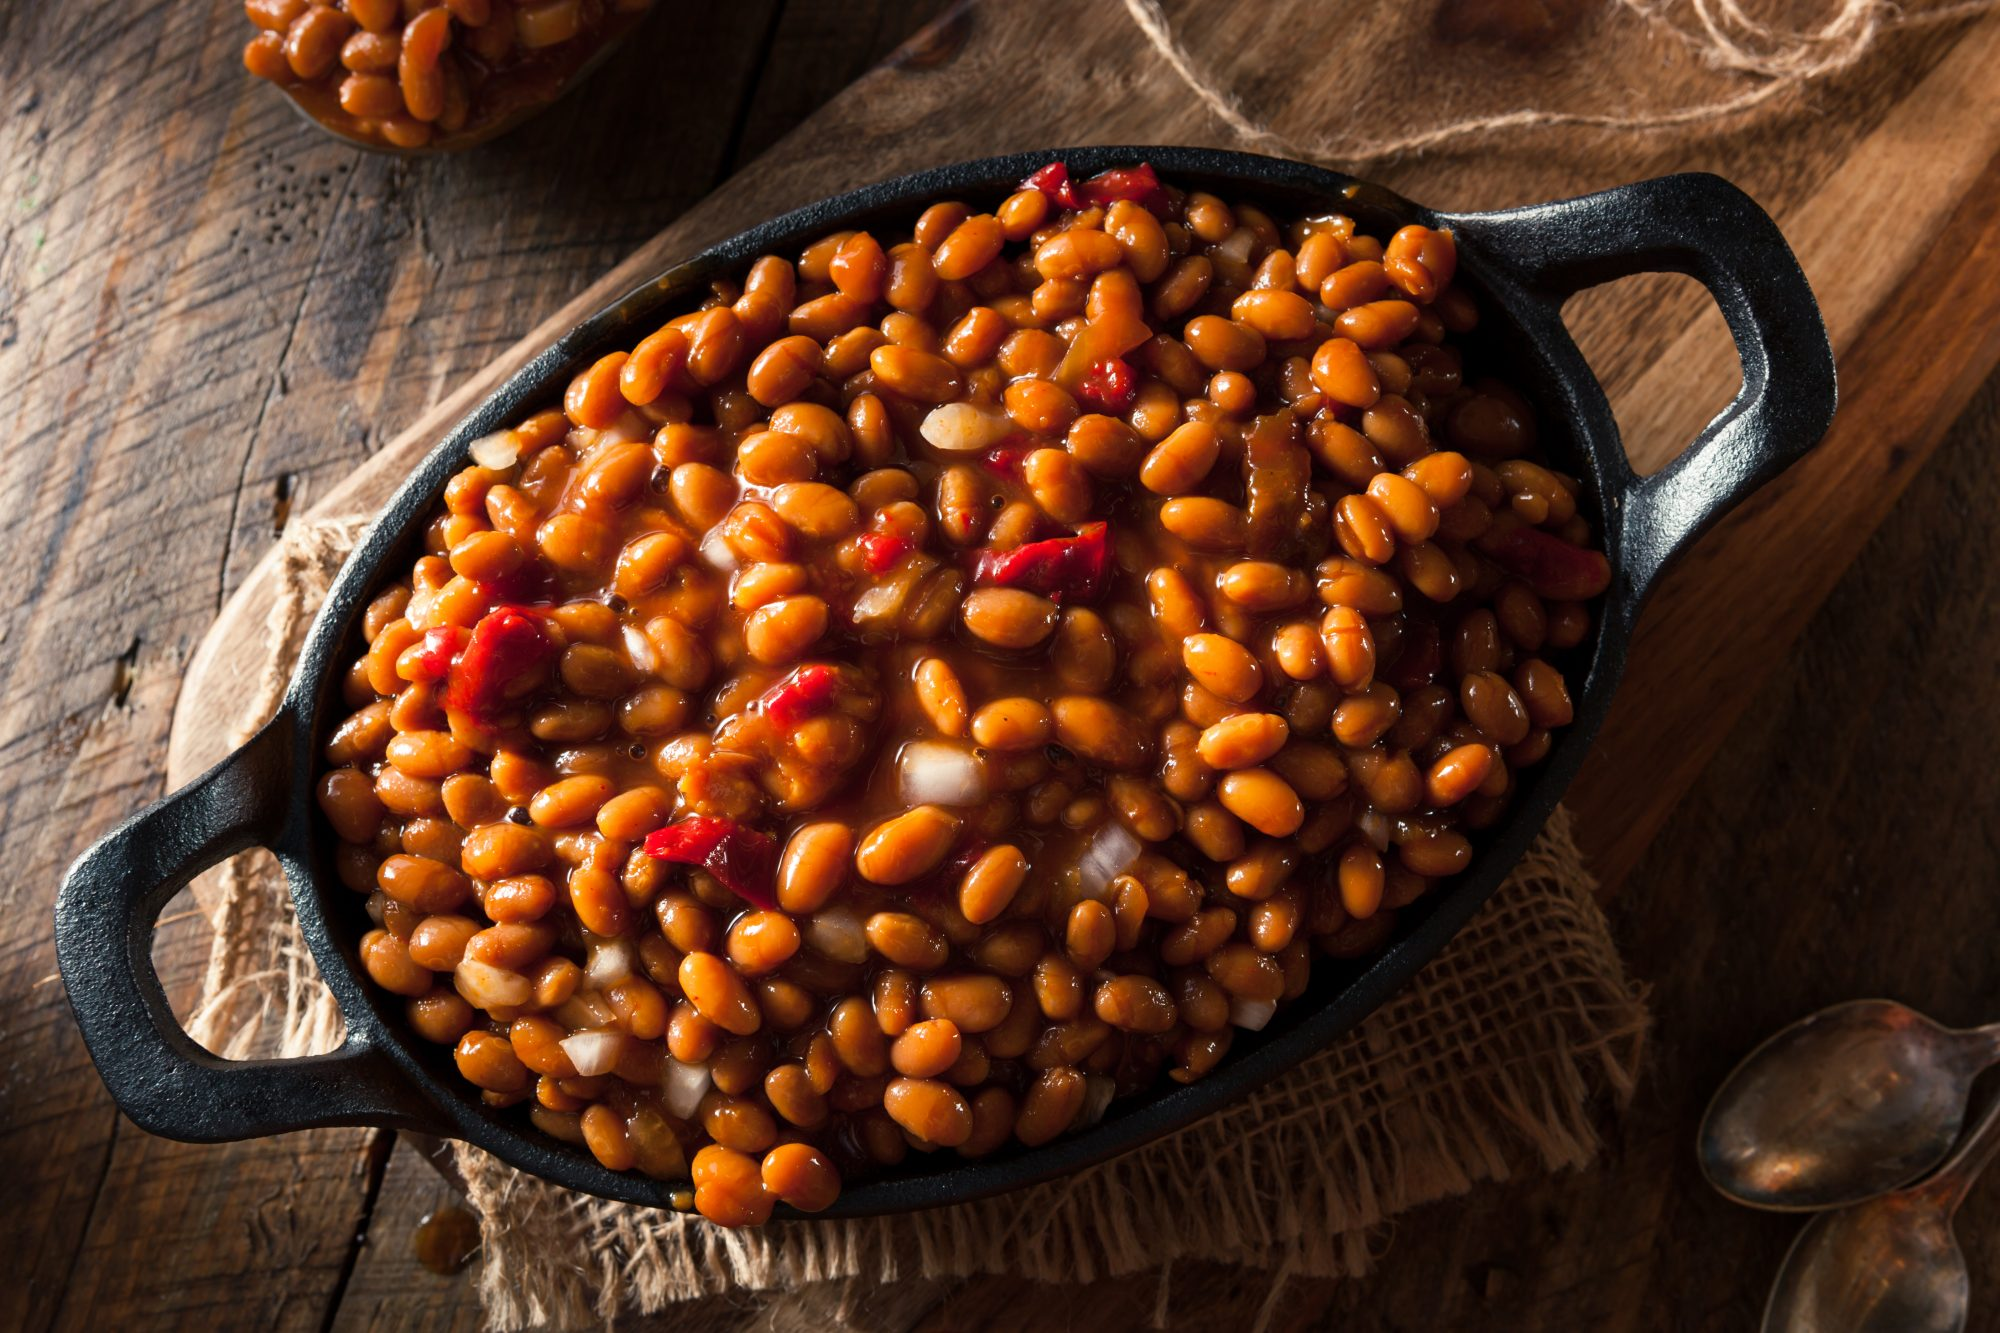 The Secret to Making Canned Baked Beans Taste Homemade